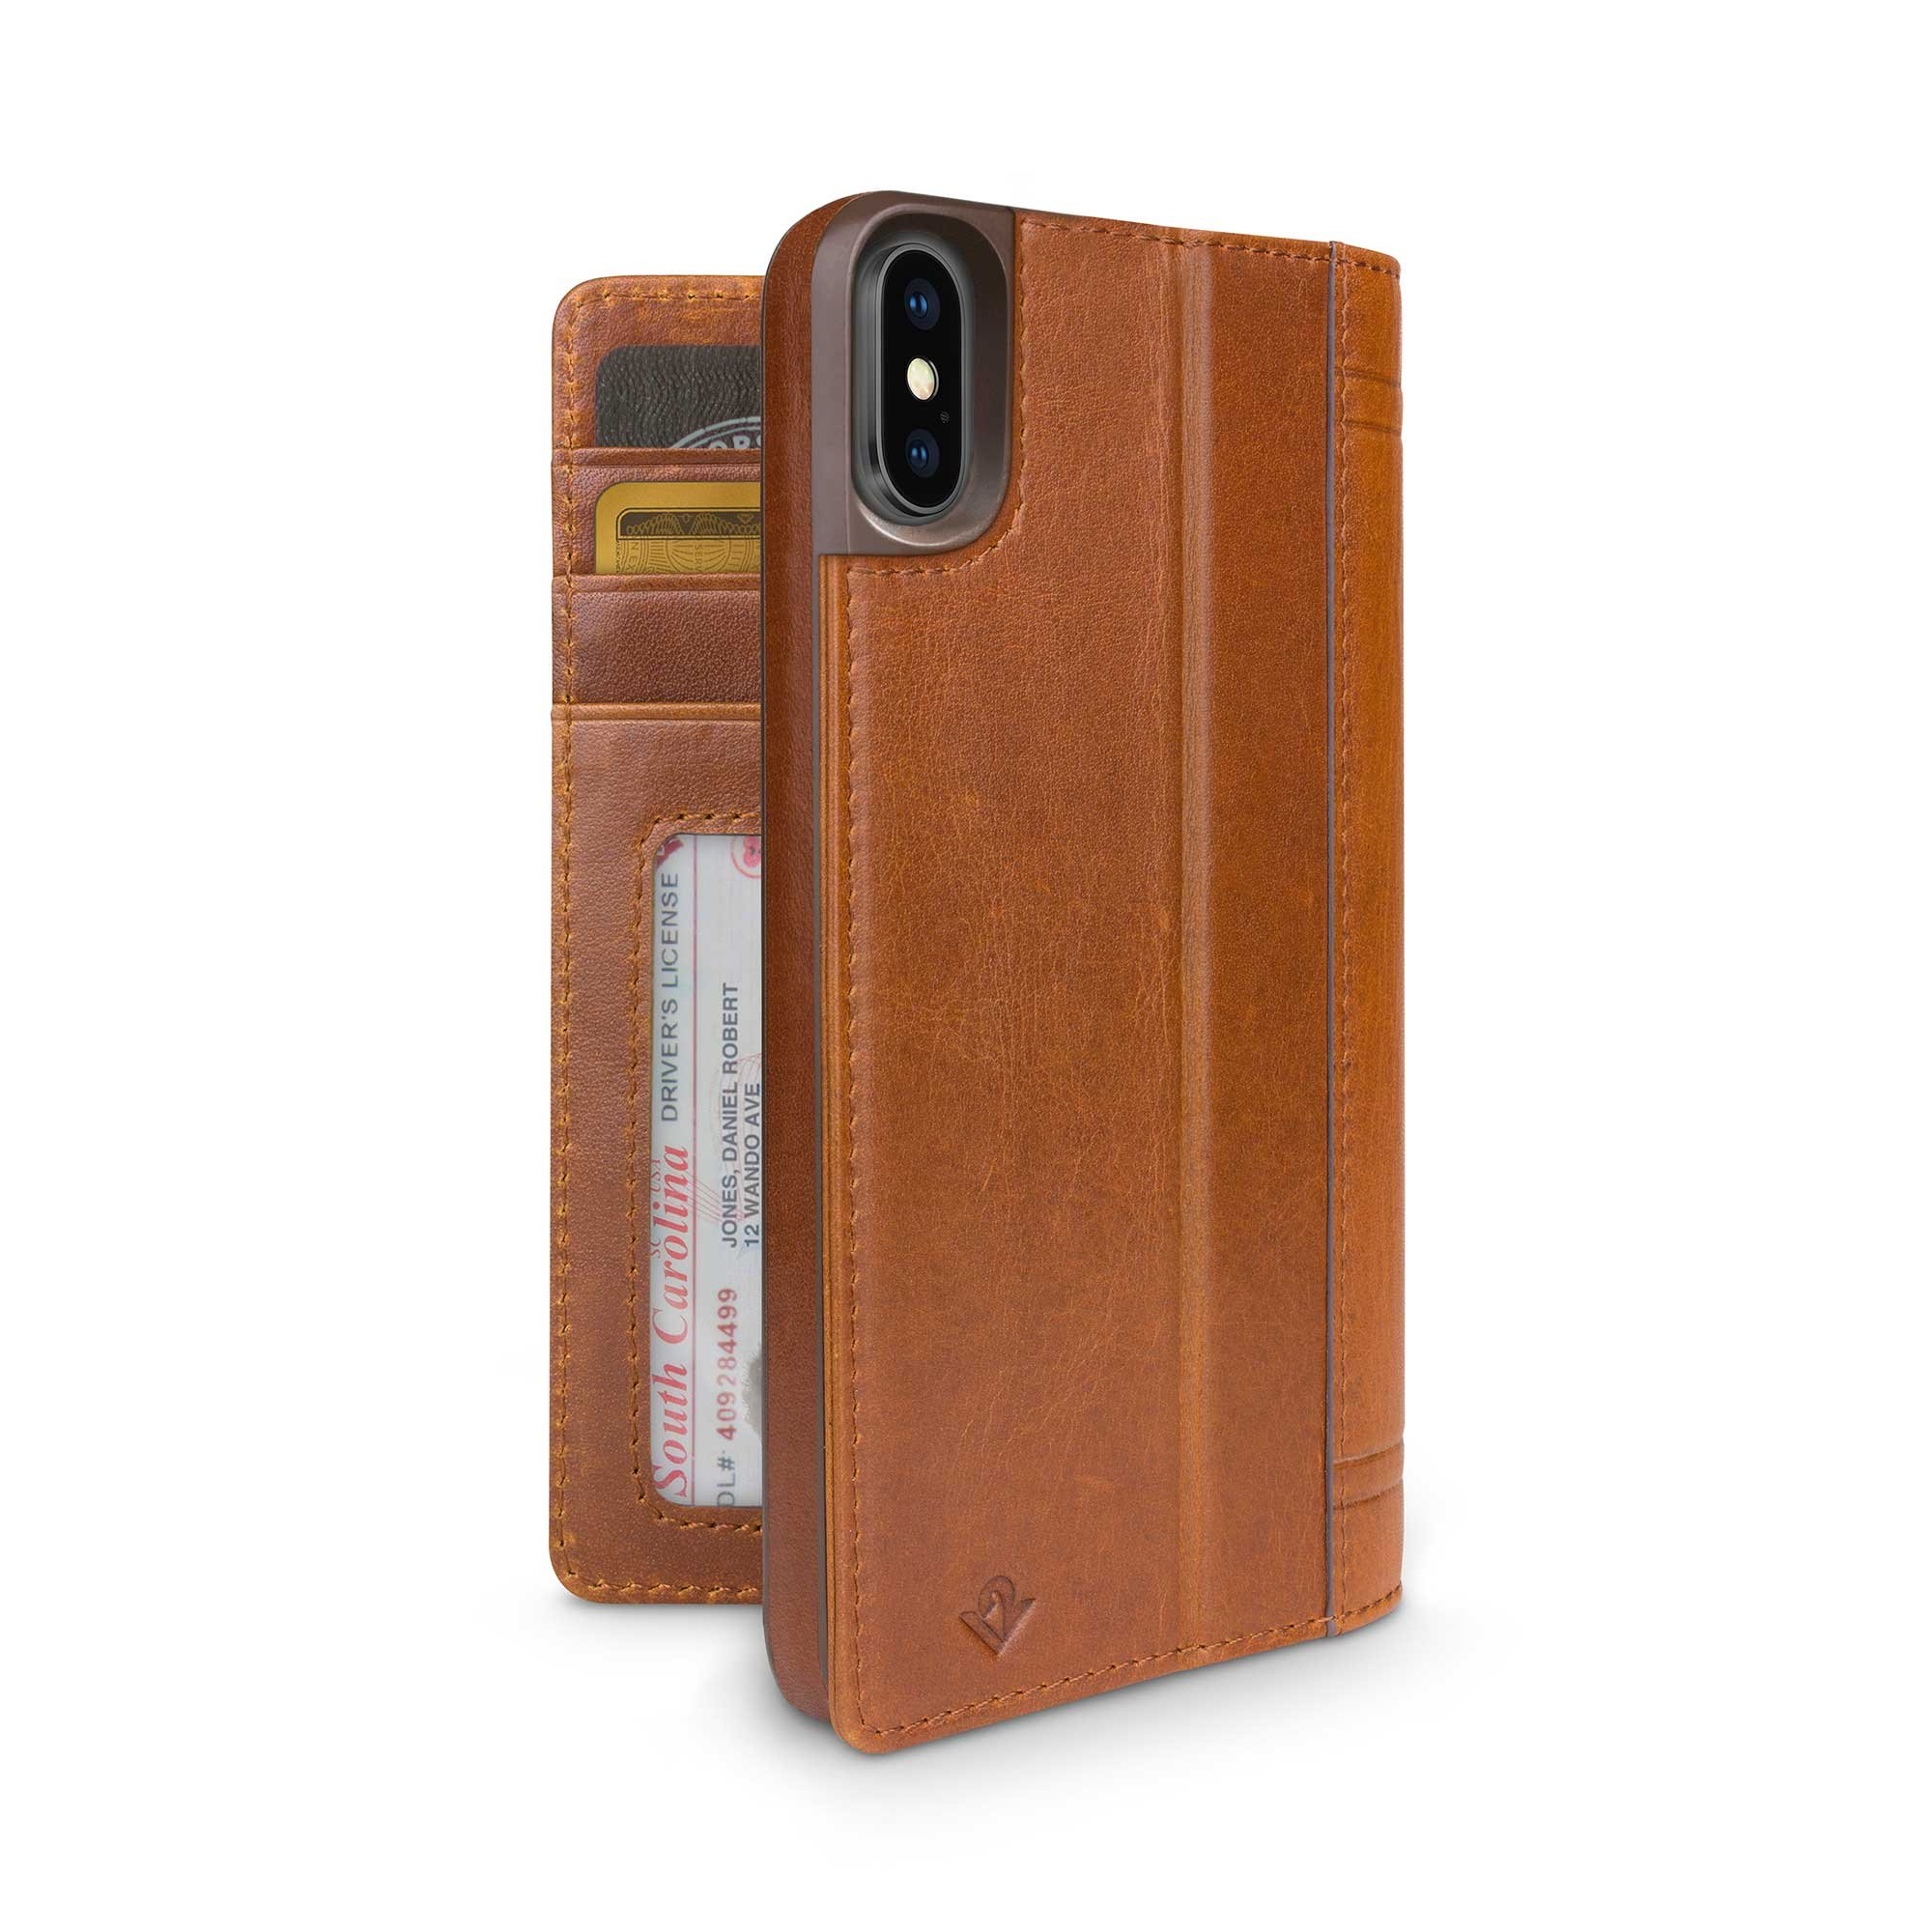 Twelve South Journal for iPhone XS / iPhone X | Leather Wallet Shell and Display Stand (Cognac) by Twelve South